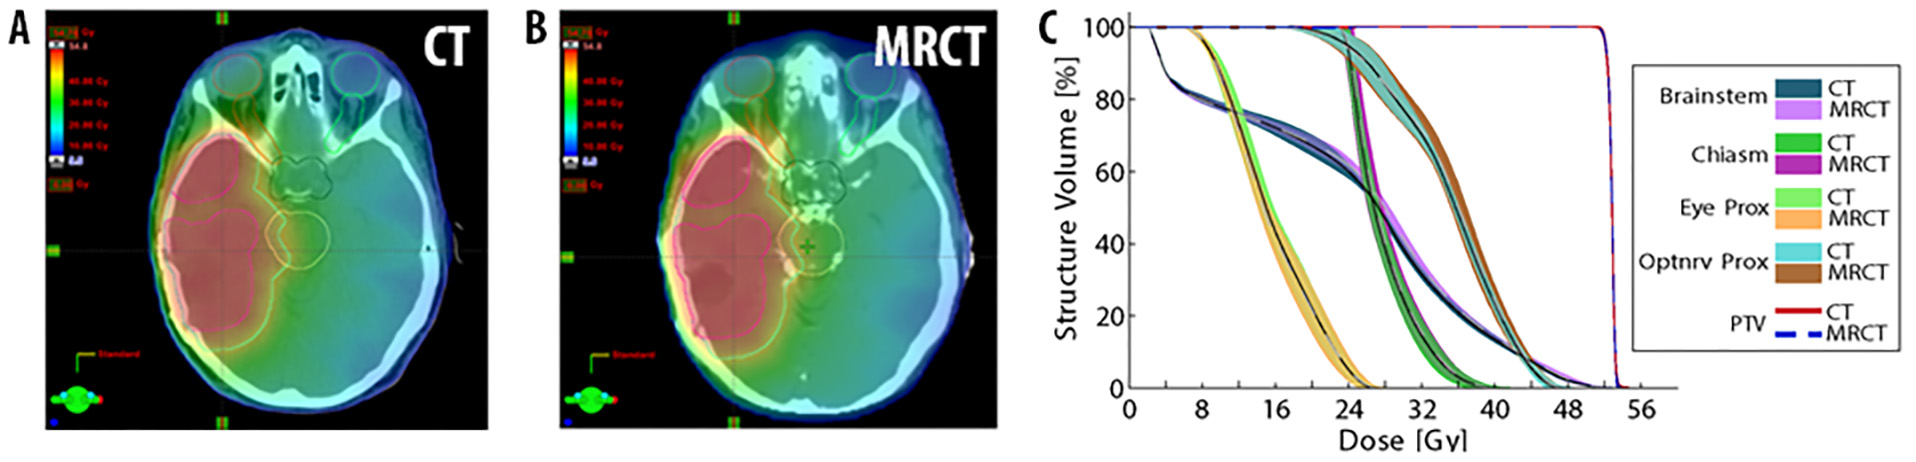 CT and MRCT of head